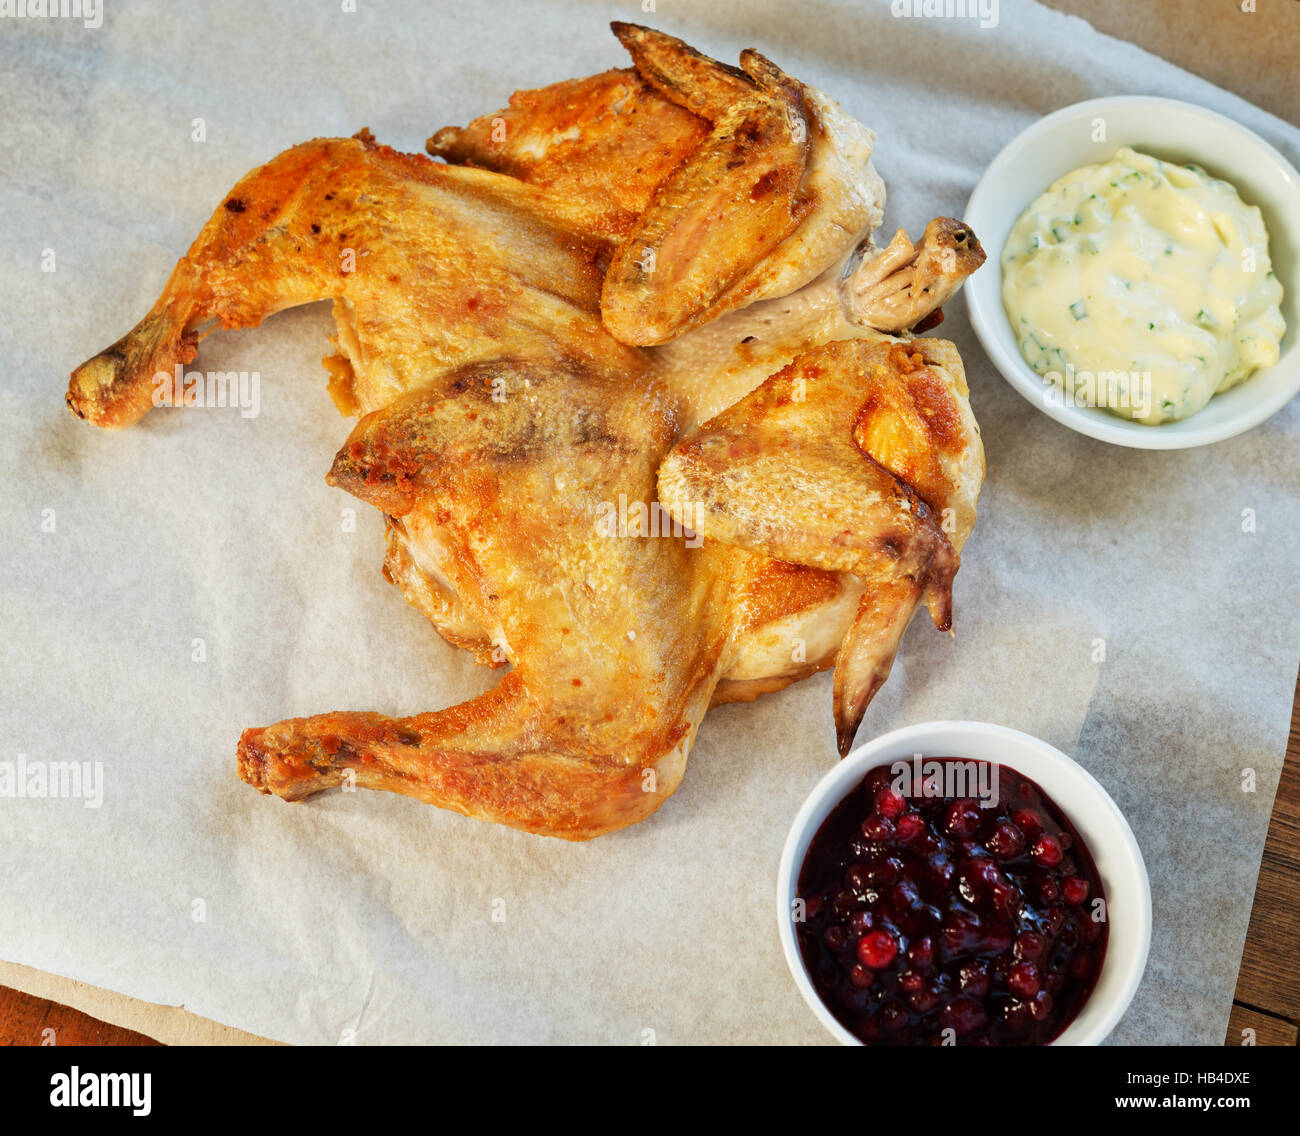 fried chicken tobacco - Stock Image